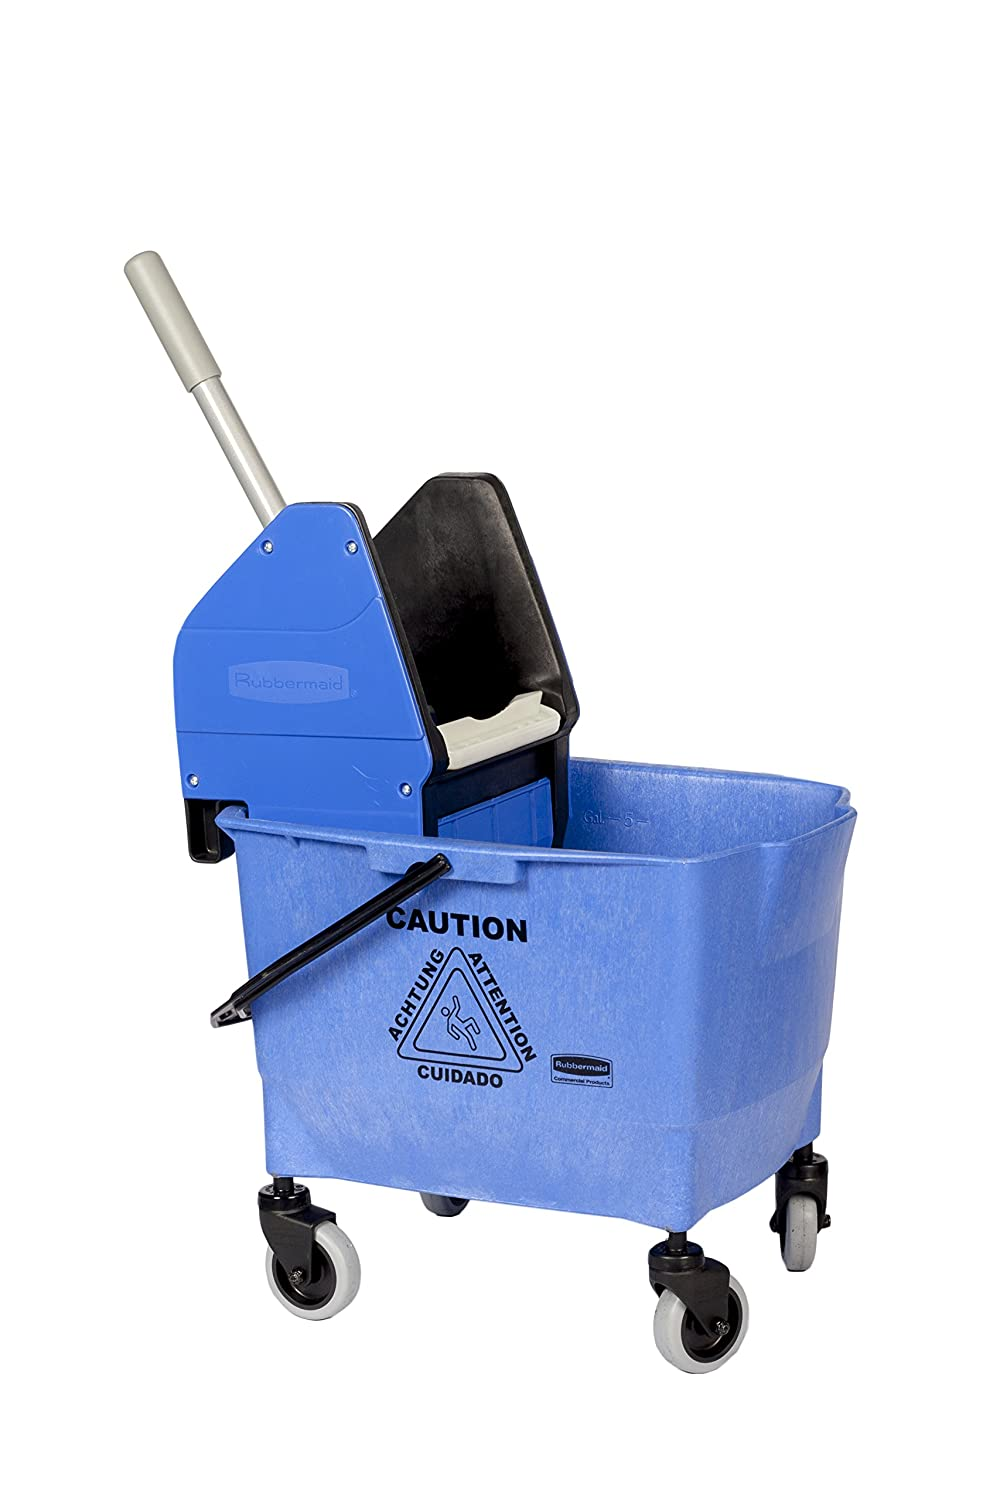 Rubbermaid Commercial 25L Combo Bravo Mop Bucket with Wringer - Blue Newell Rubbermaid R014155 win8202